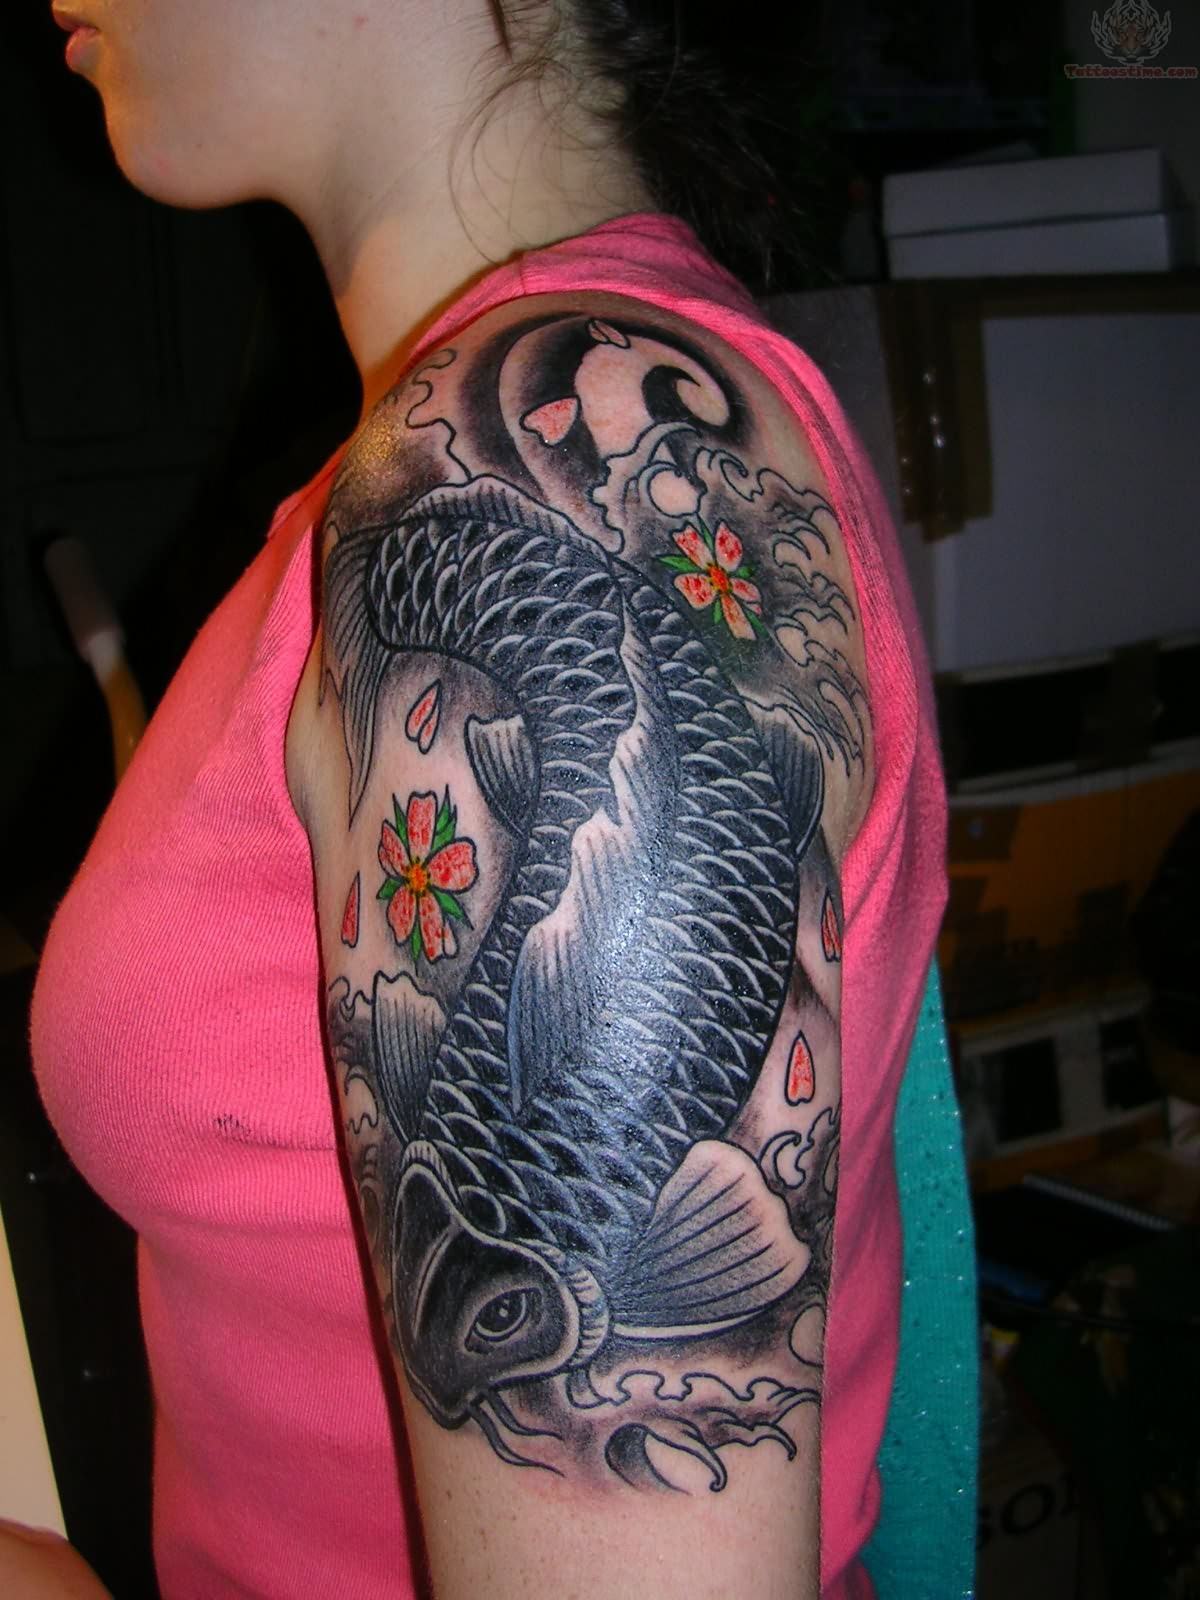 Koi tattoos designs ideas and meaning tattoos for you for Japanese sleeve tattoos meanings